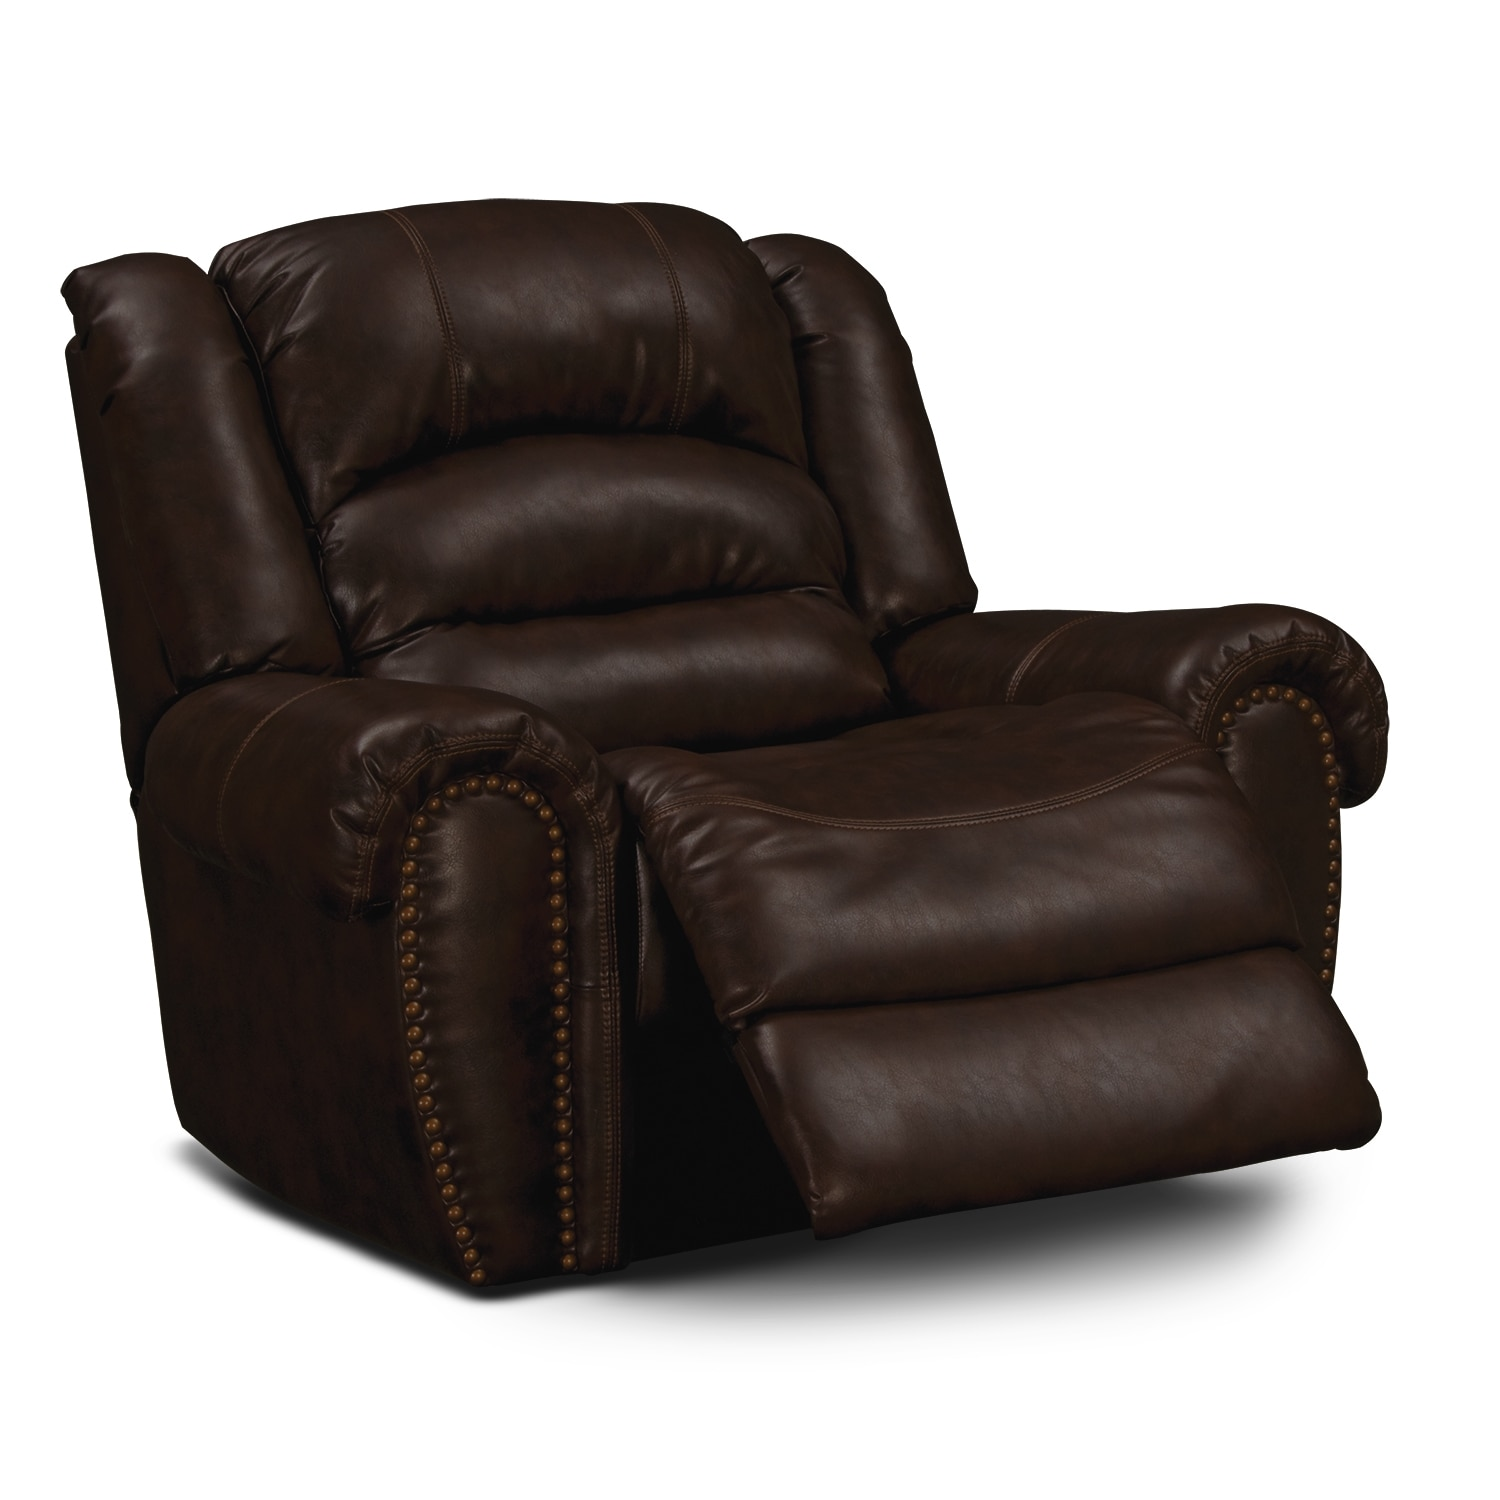 Galveston Leather Rocker Recliner Value City Furniture